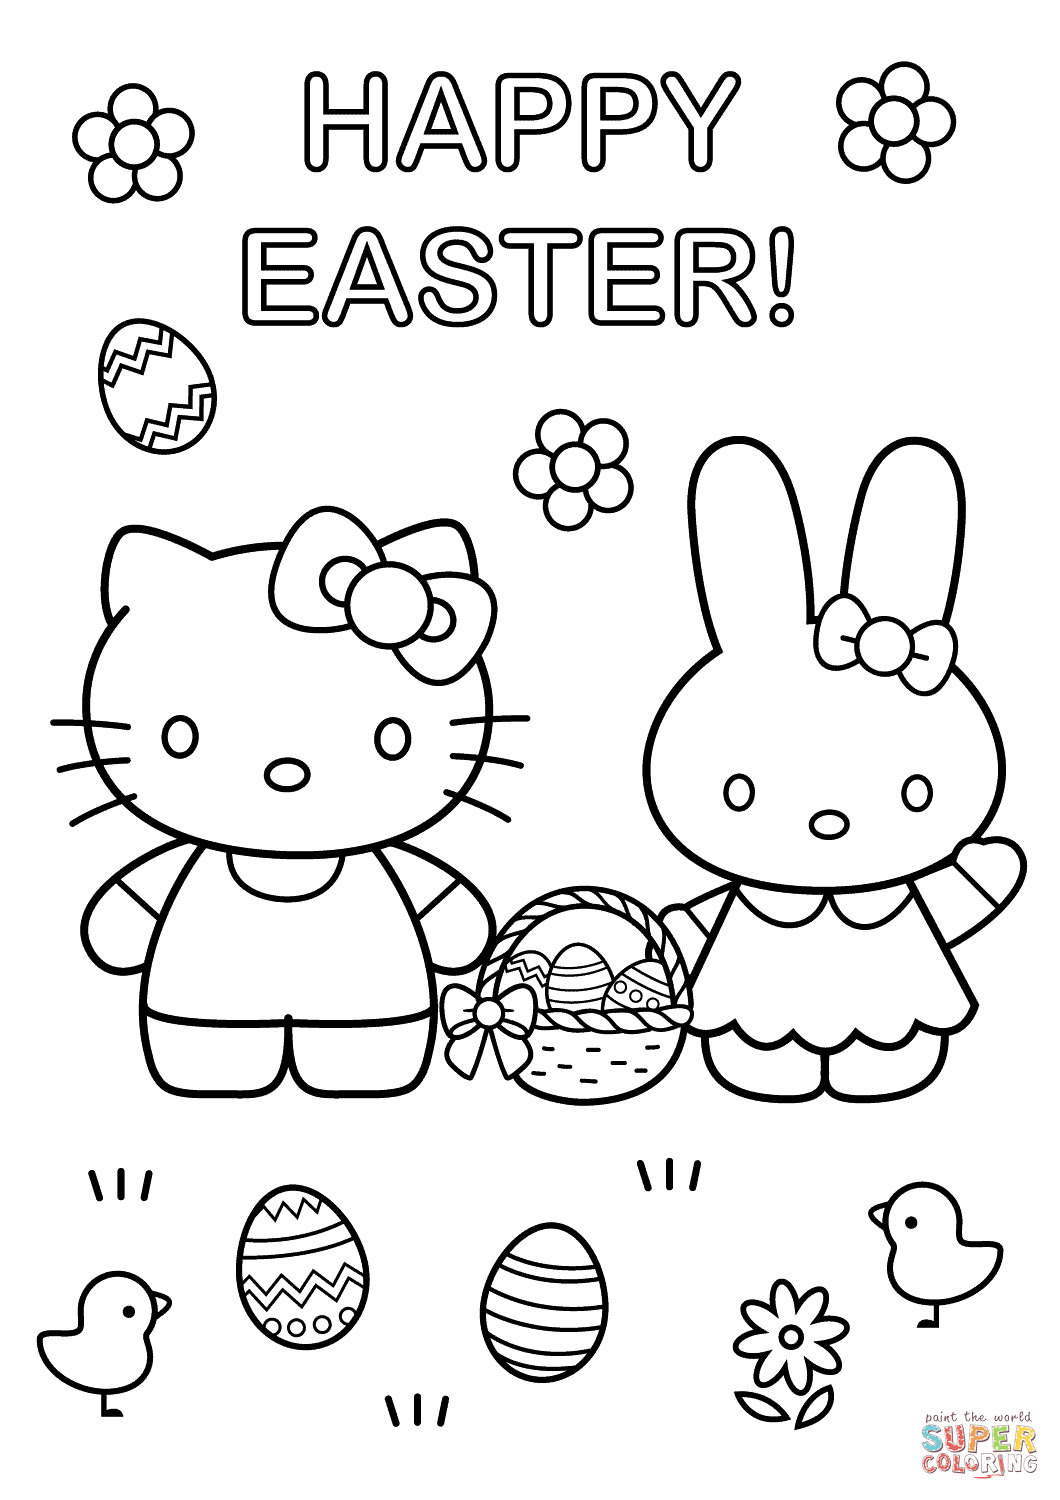 Hello kitty with easter bunny coloring page from hello kitty category select from 29179 printable crafts of cartoons nature animals bible and many more